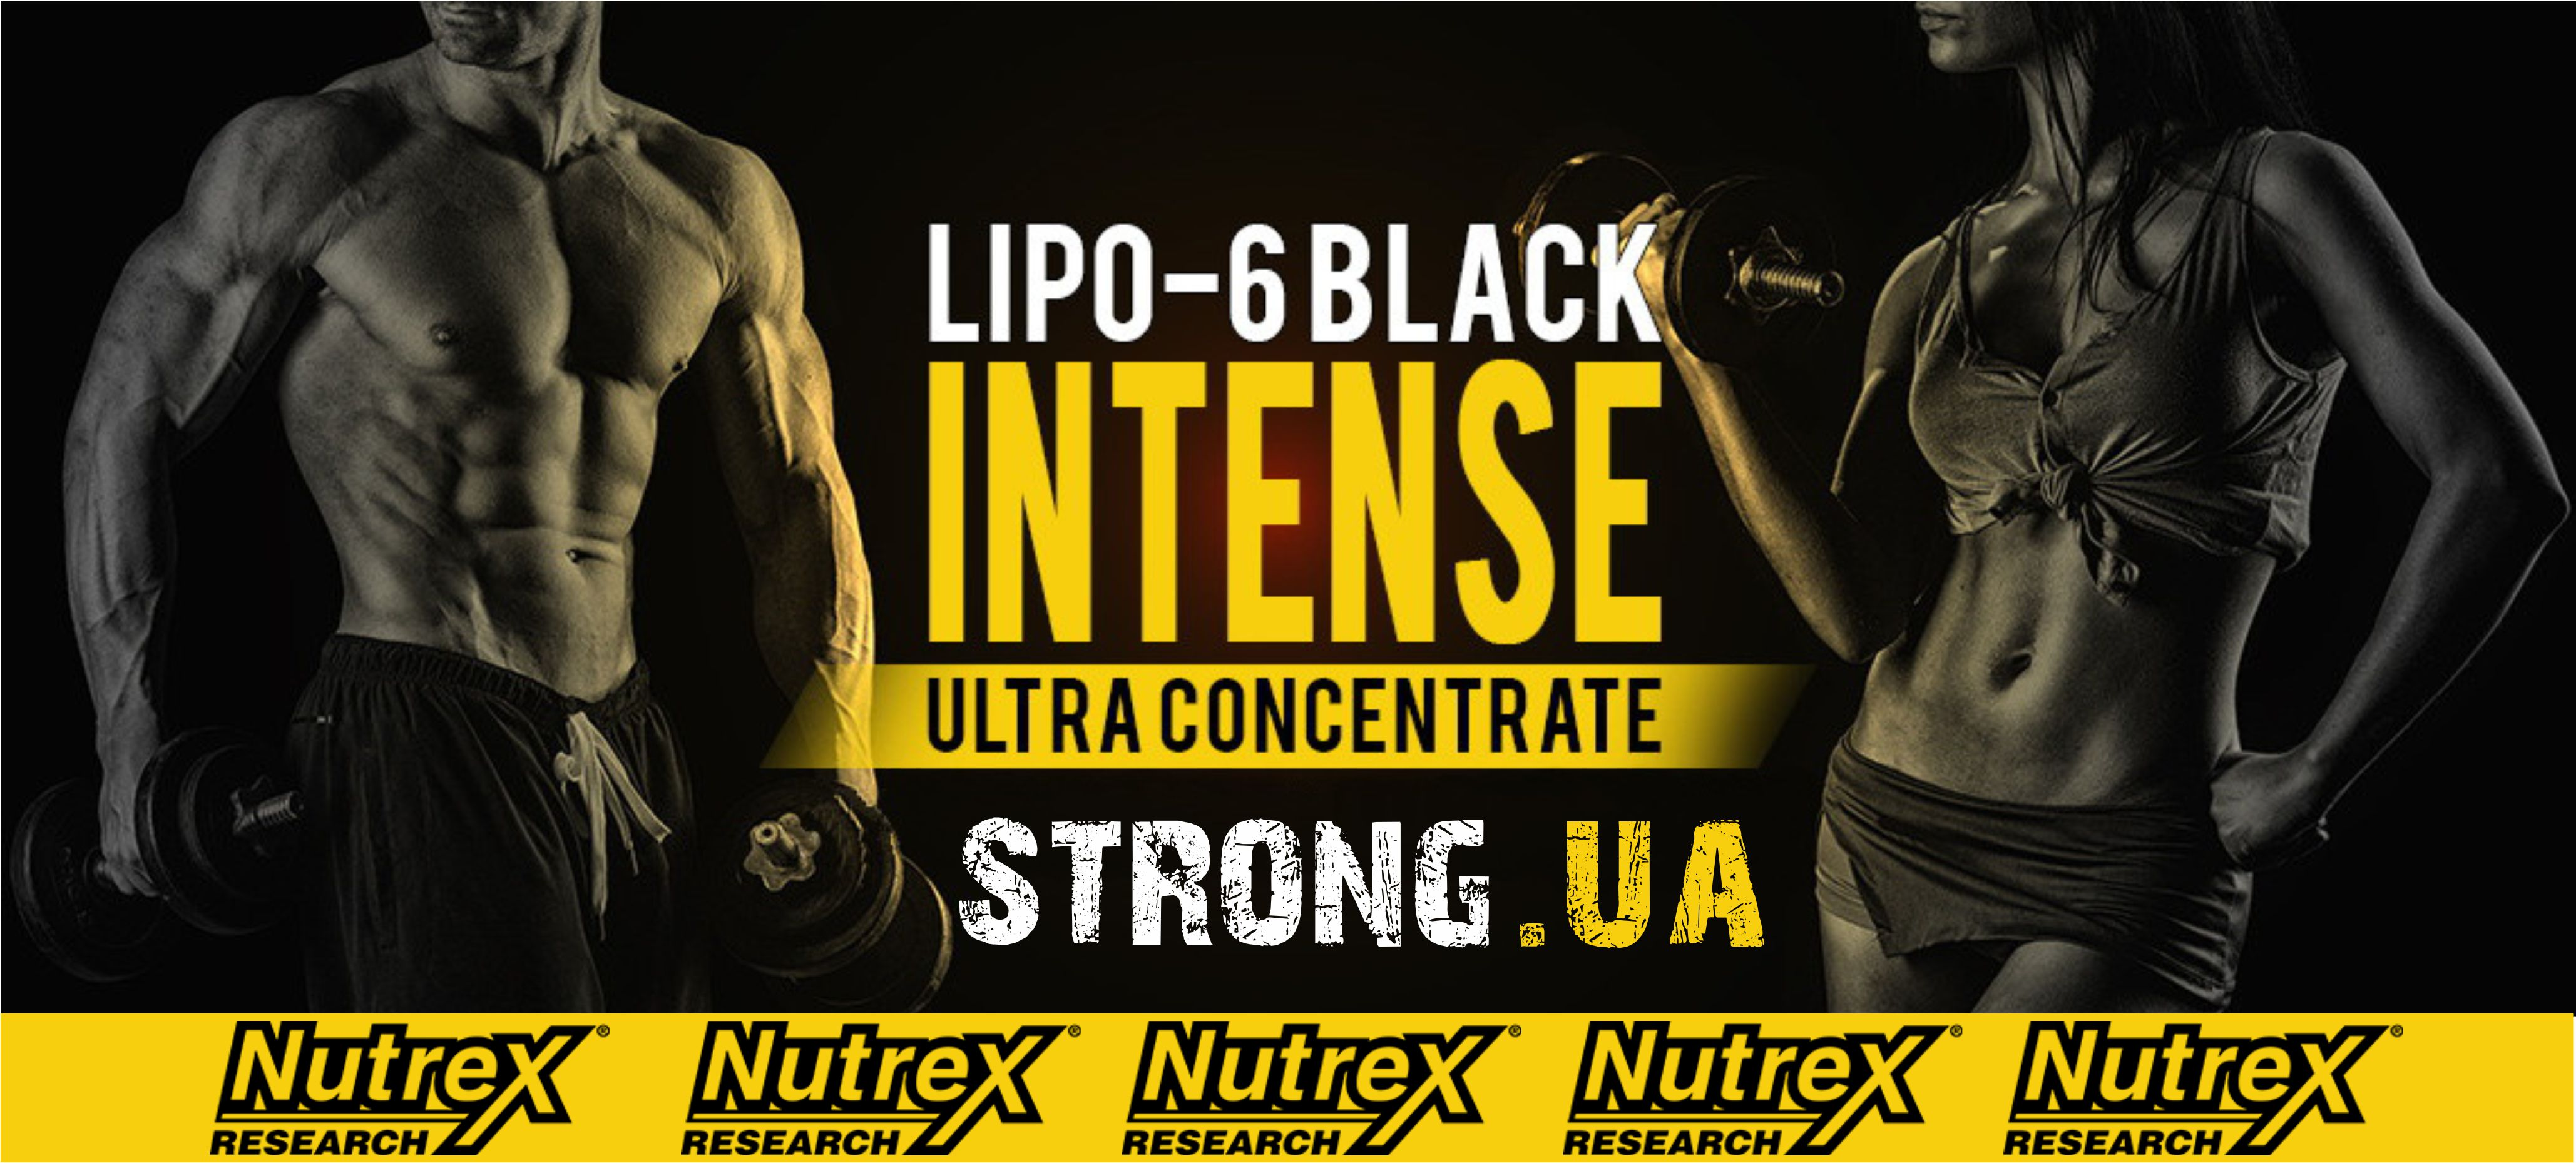 Lipo 6 black INTENSE Ultra Concentrate, 60 caps